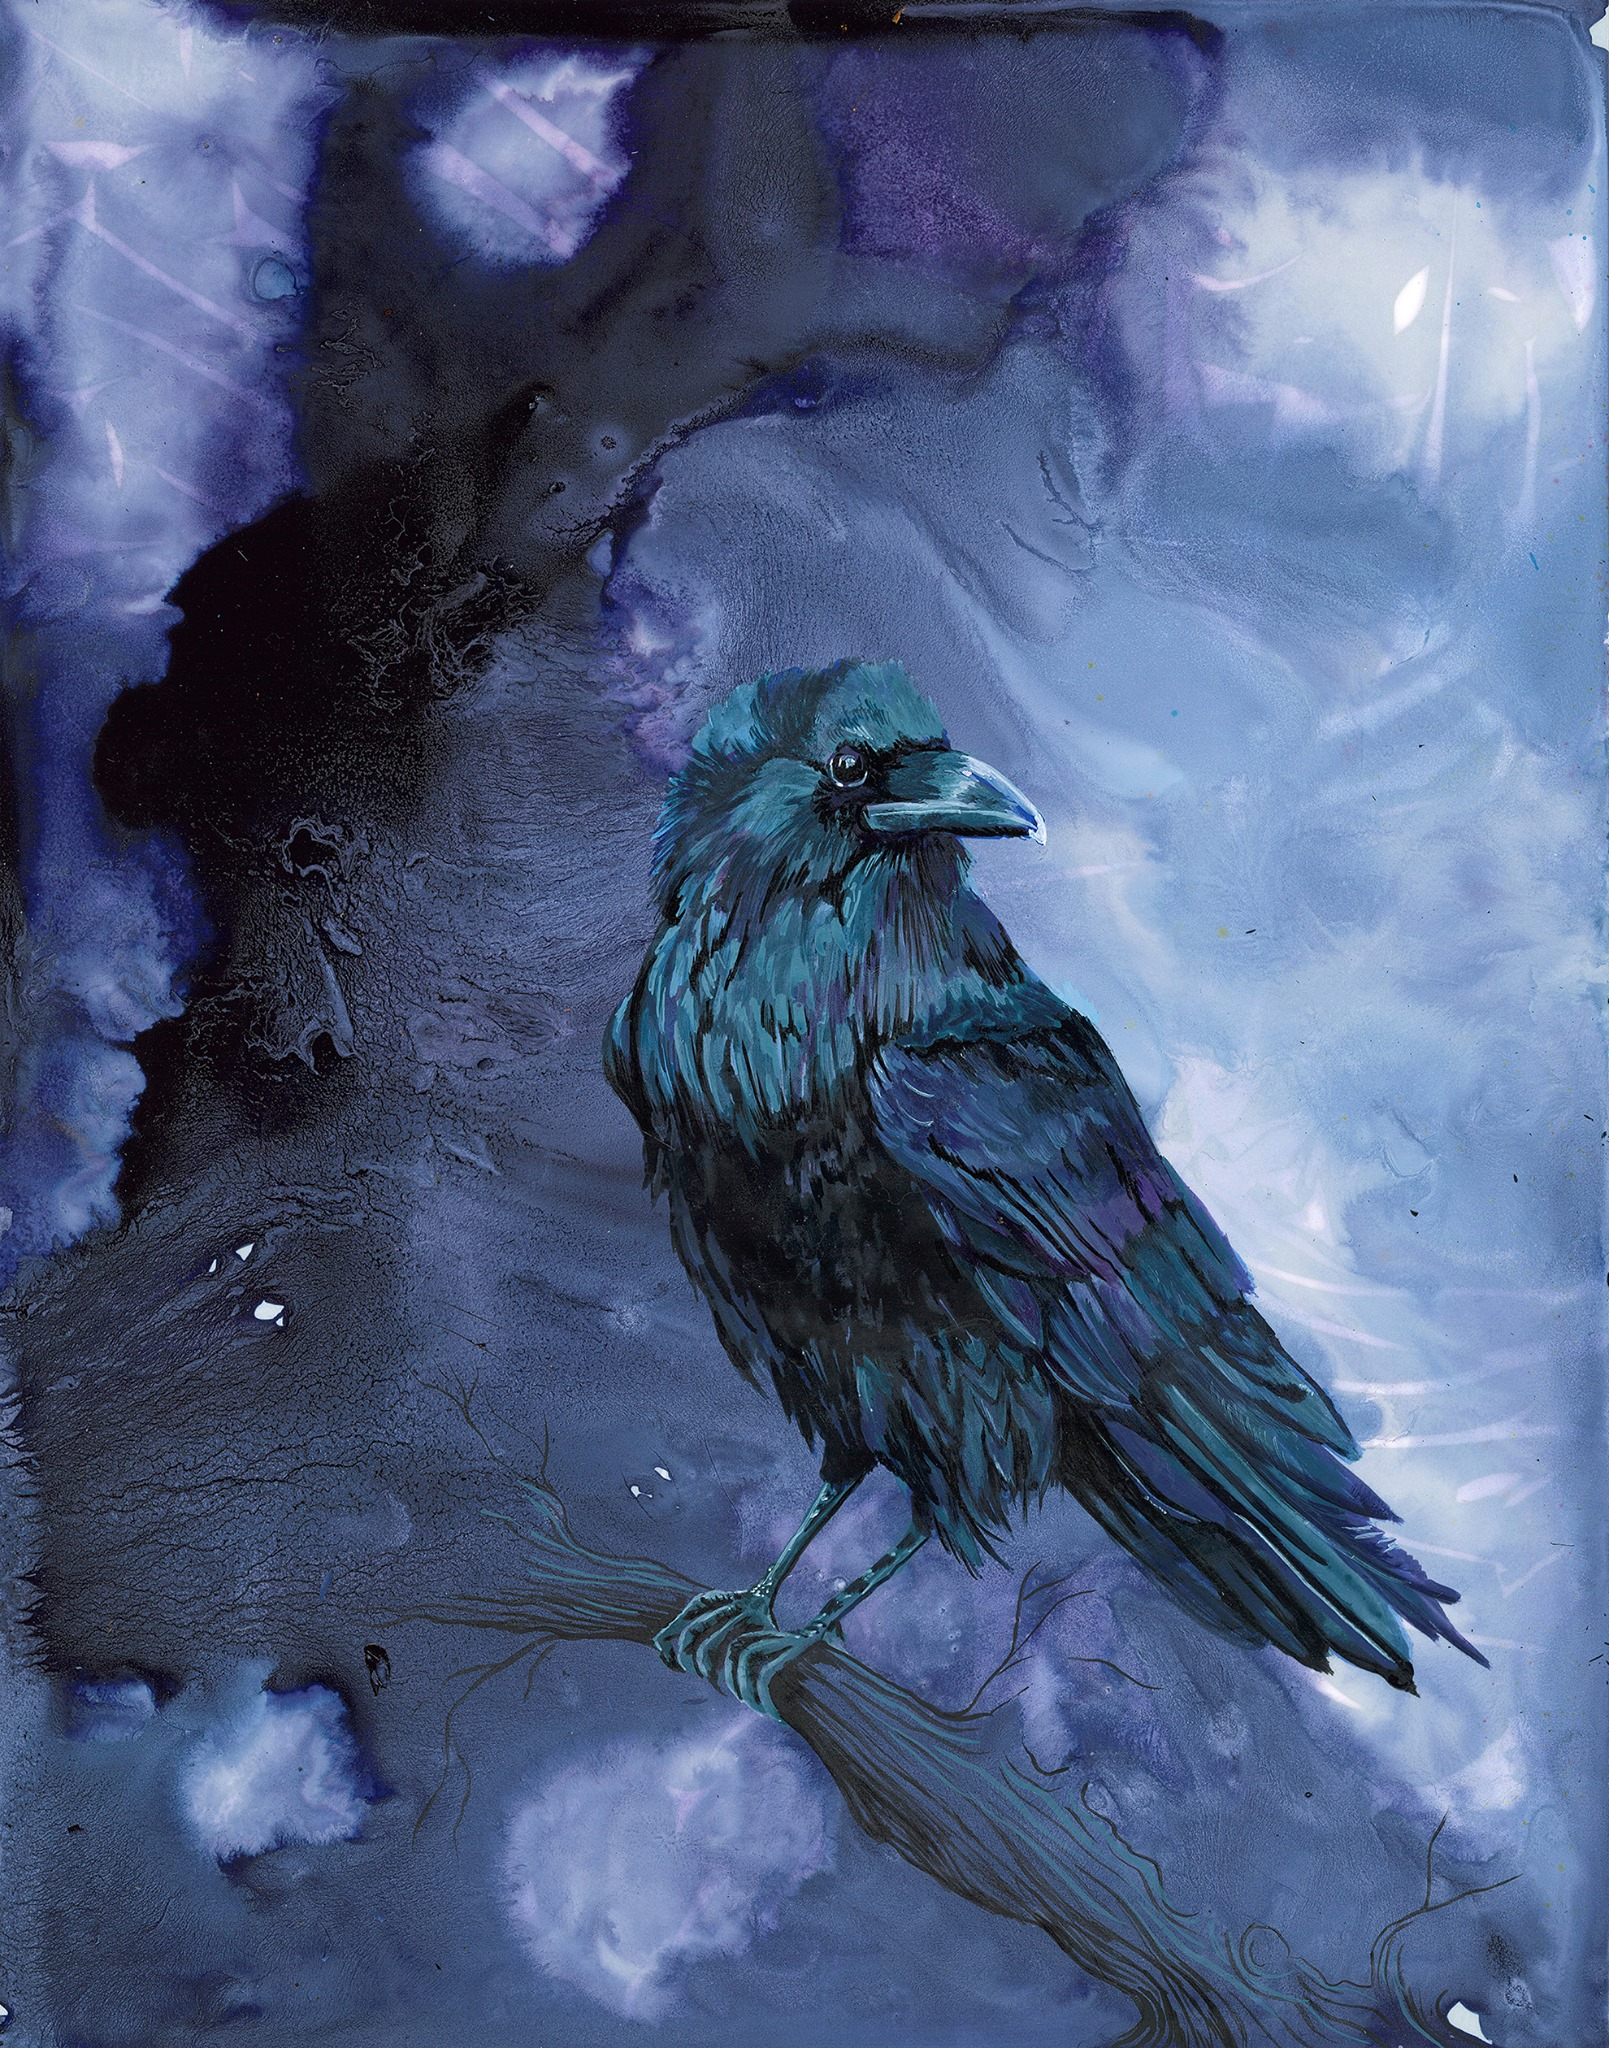 Amber Rahe artwork, blues, purple, black, abstract cloudy/vague background with black crow at foreground.